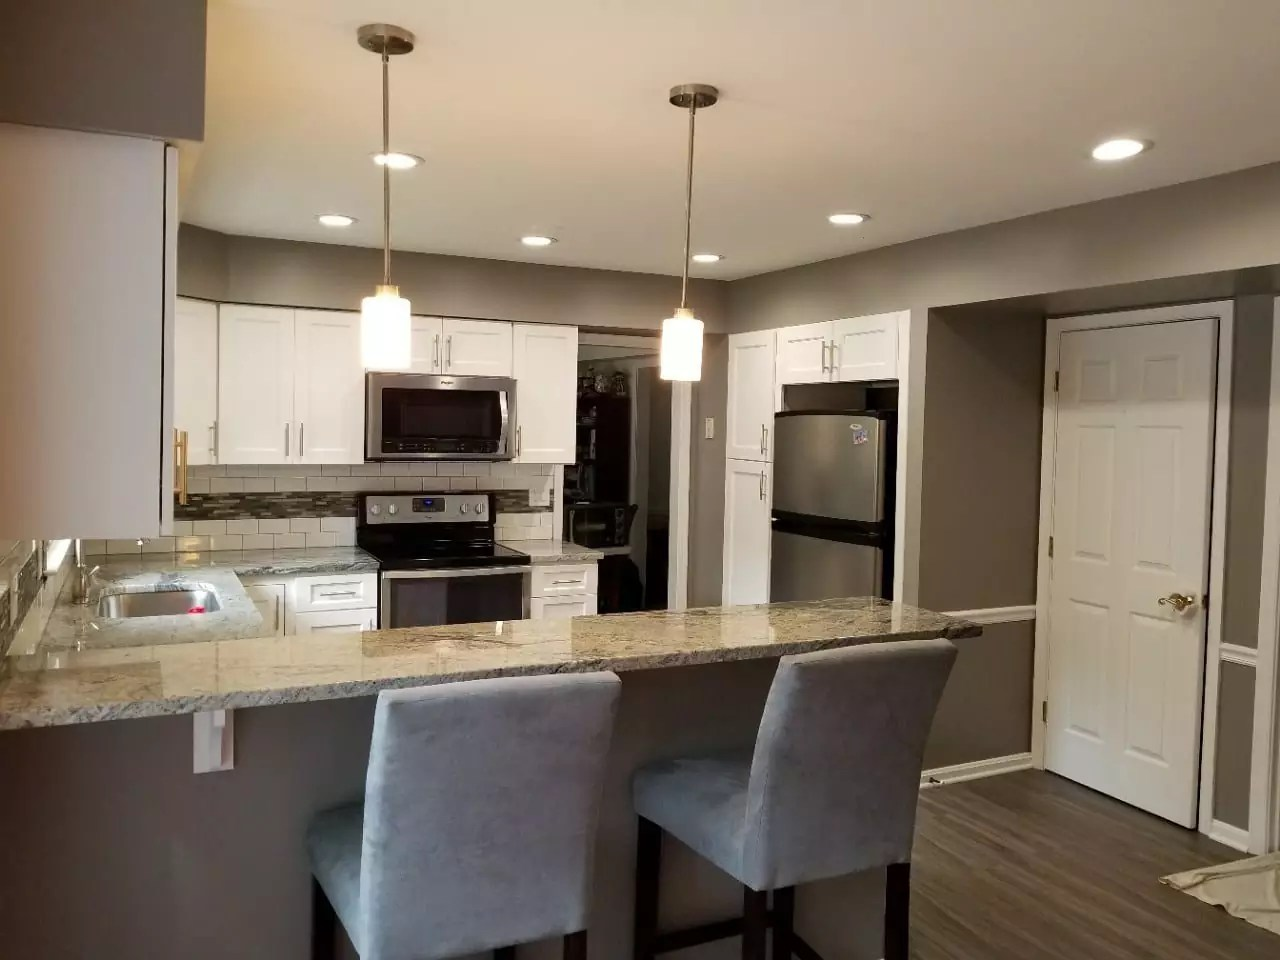 inexpensive kitchen remodel chair cushions target low cost remodeling baltimore trademark construction don t fall for a in